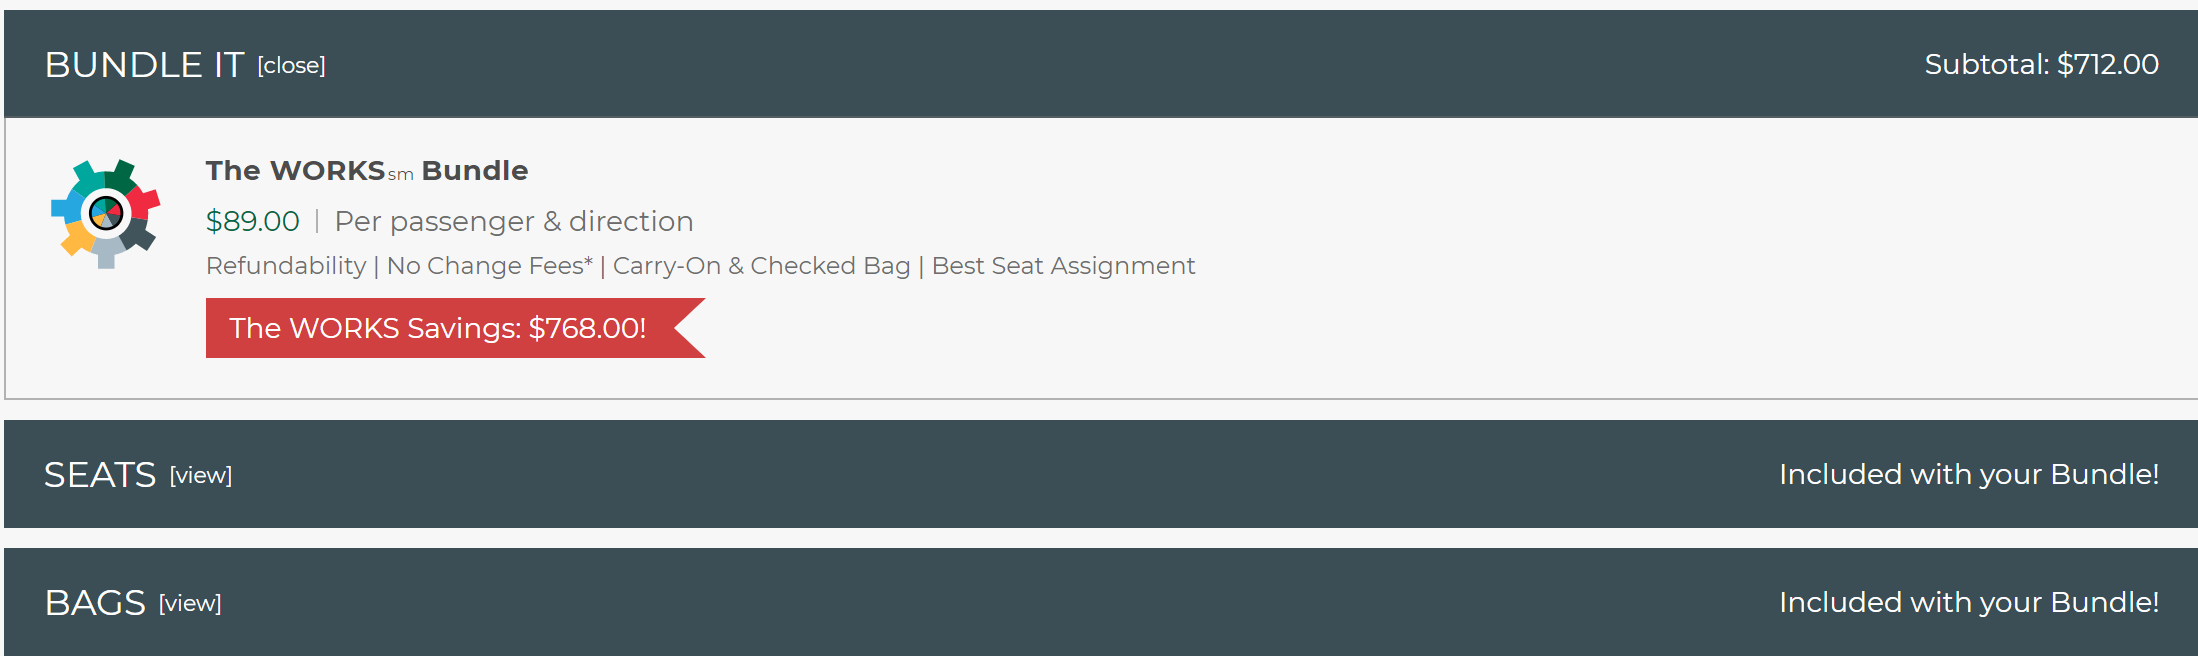 $712 for seat selection and baggage